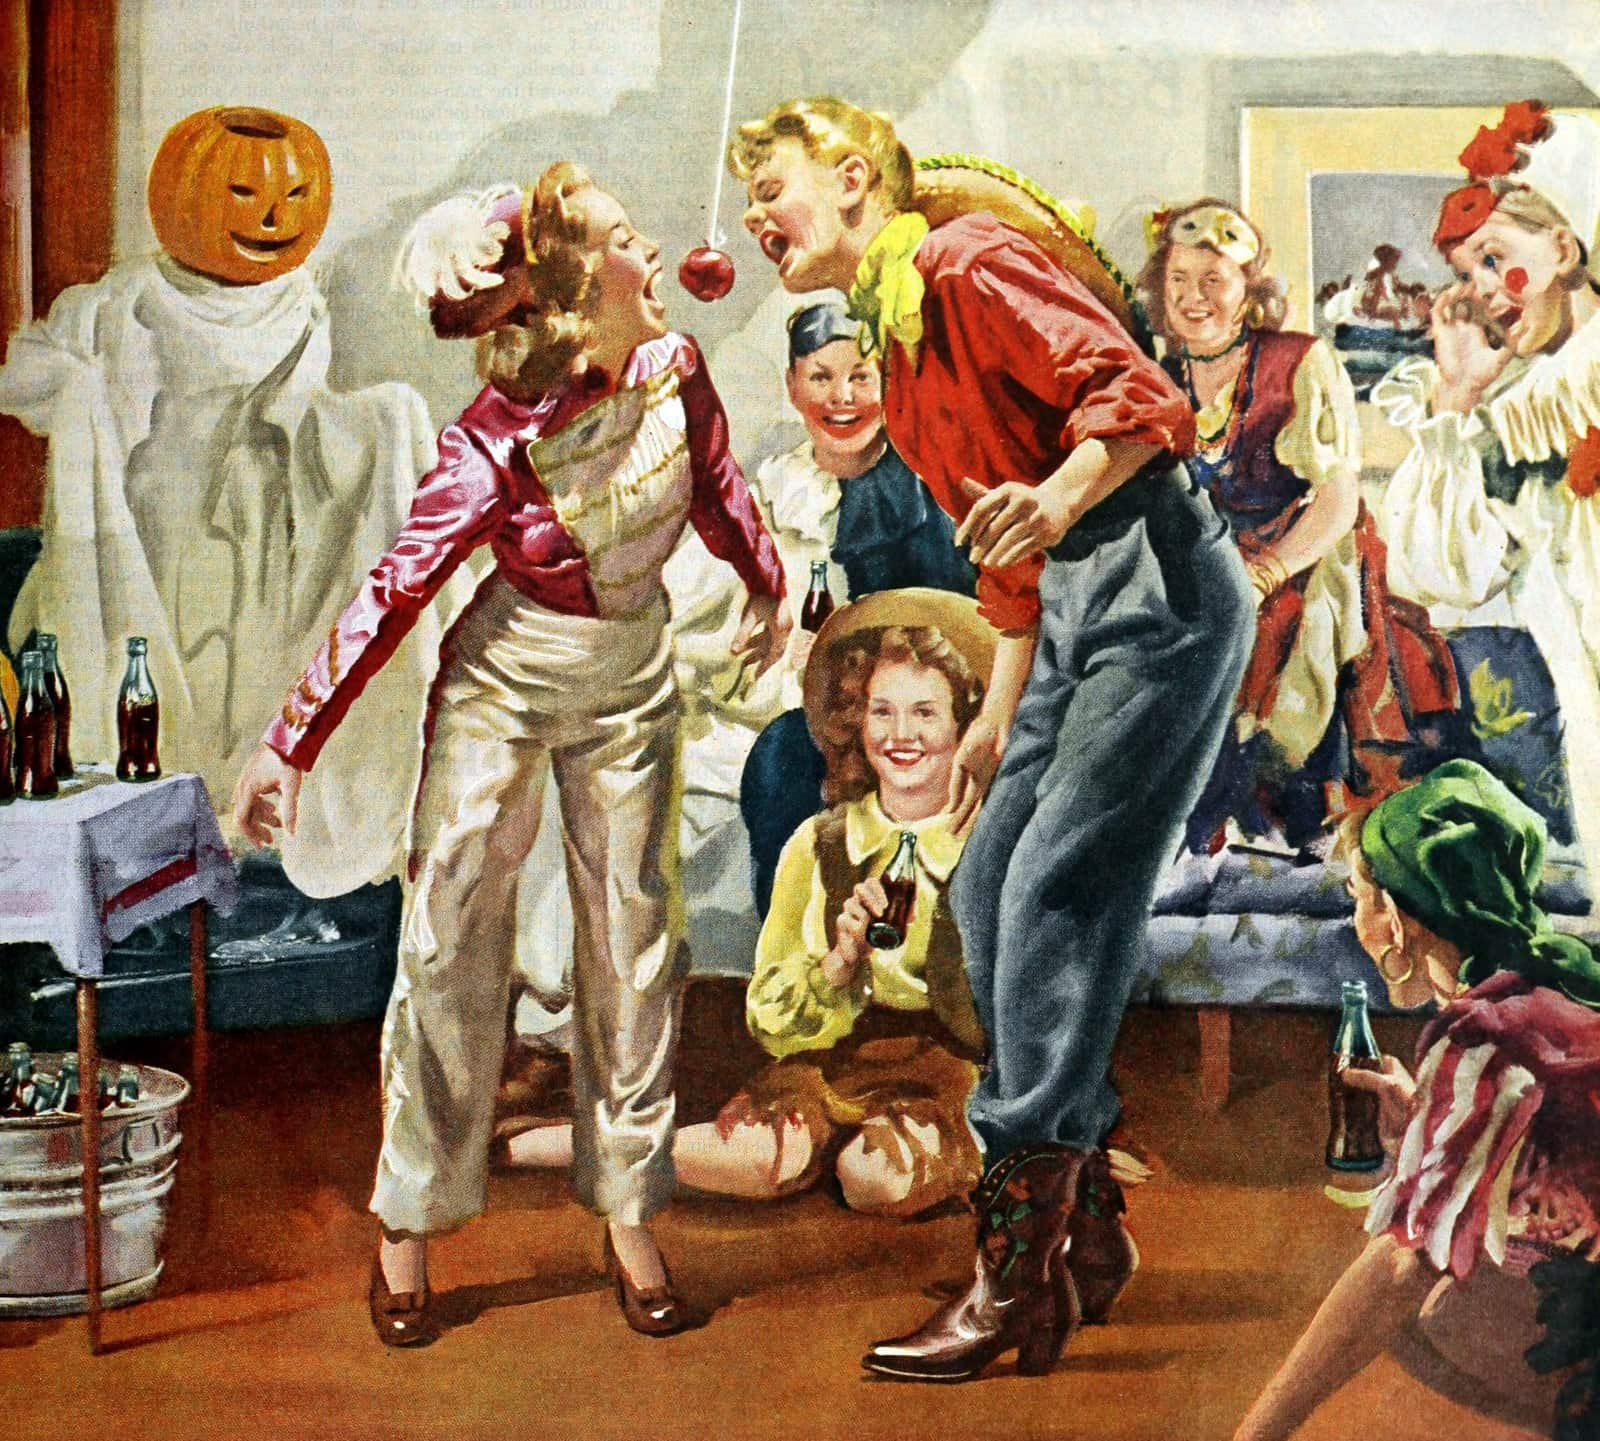 Vintage Halloween party in 1944